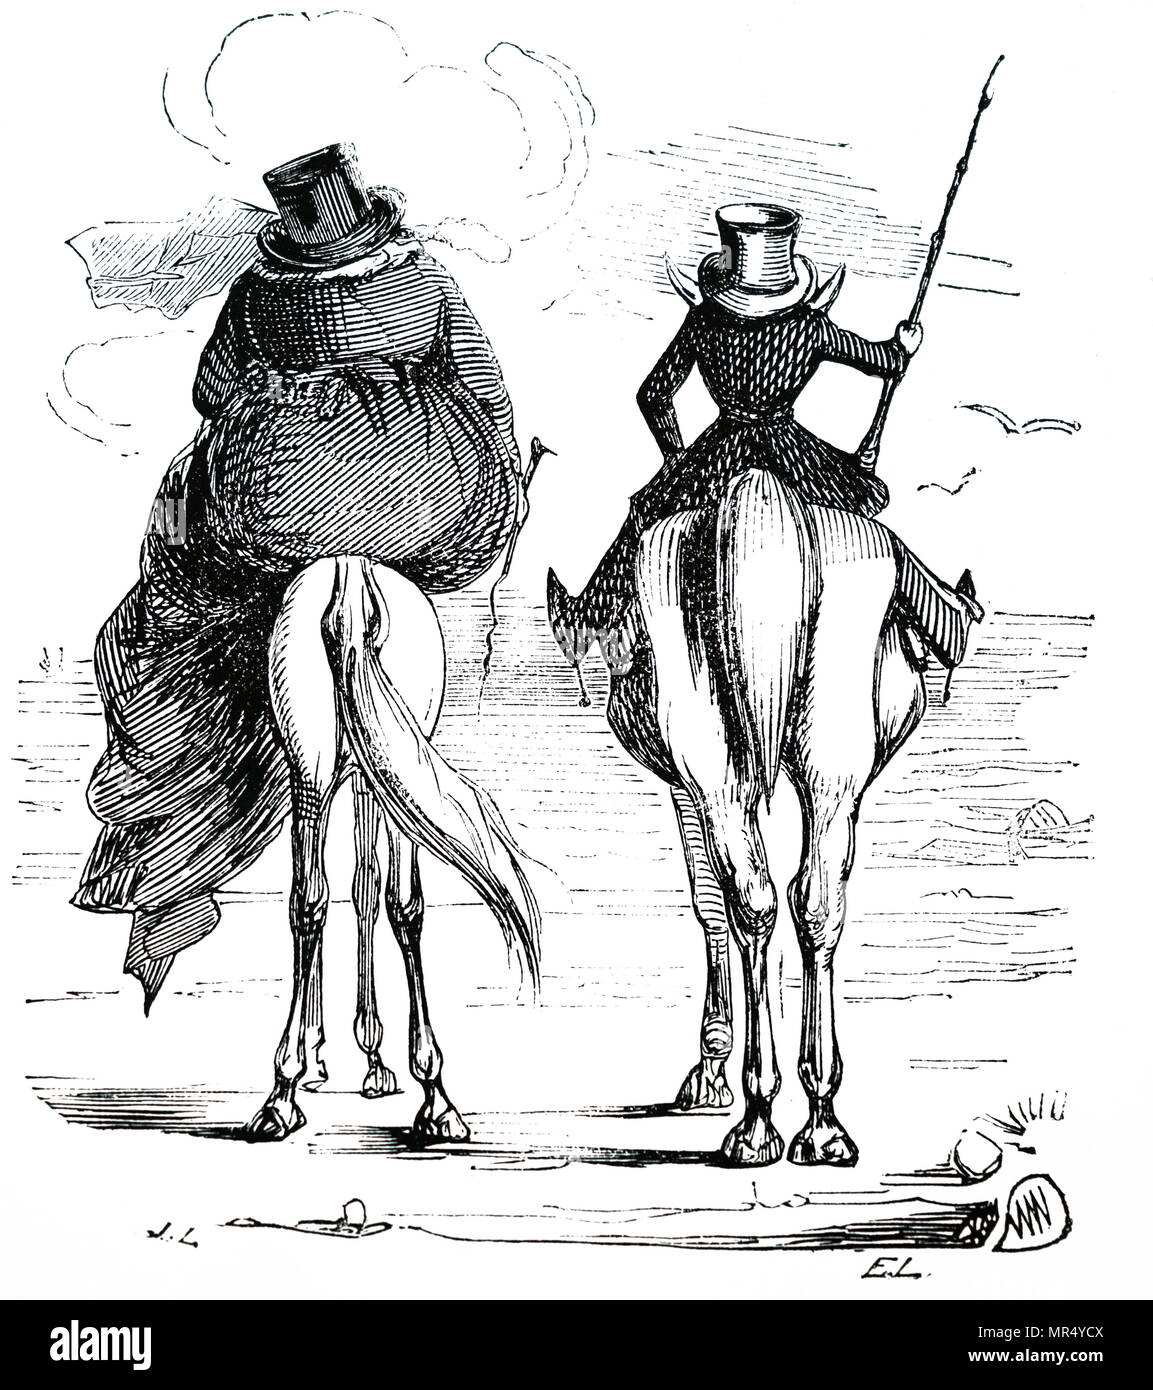 Cartoon depicting the fat and the lean enjoying a seaside holiday in conjugal companionship. Dated 19th century - Stock Image